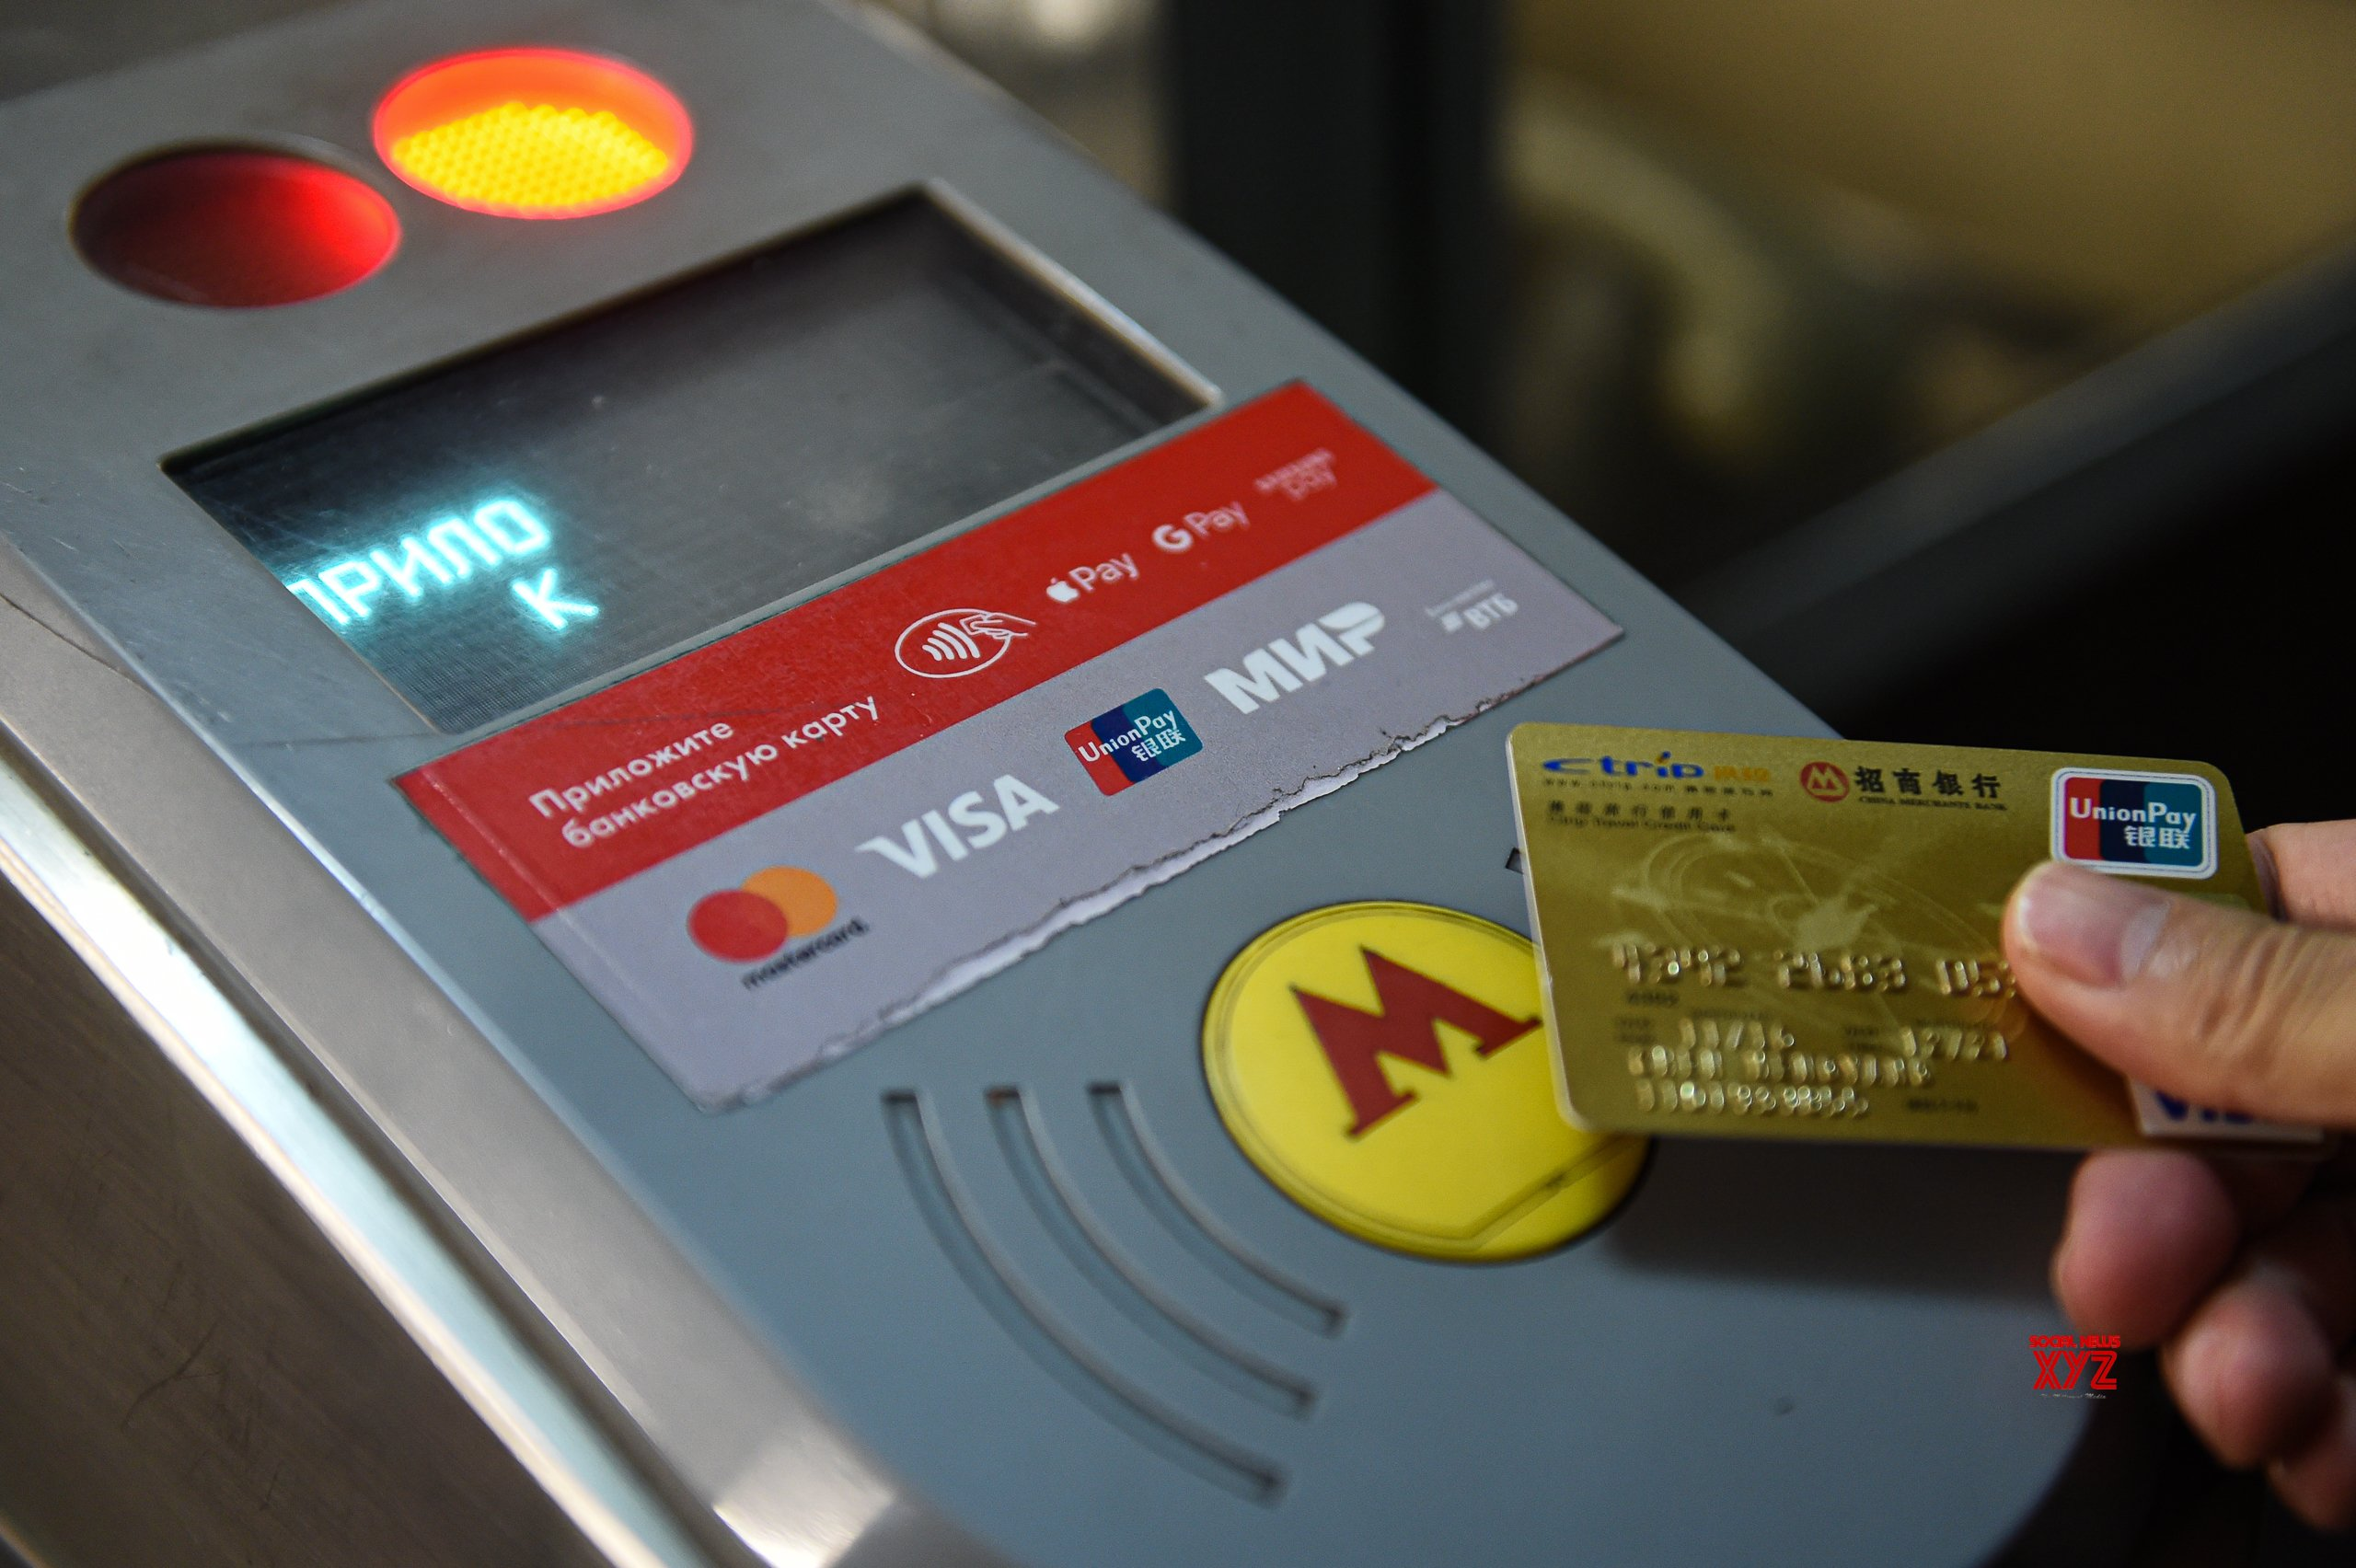 RUSSIA - MOSCOW - METRO - CHINA UNIONPAY CARD #Gallery